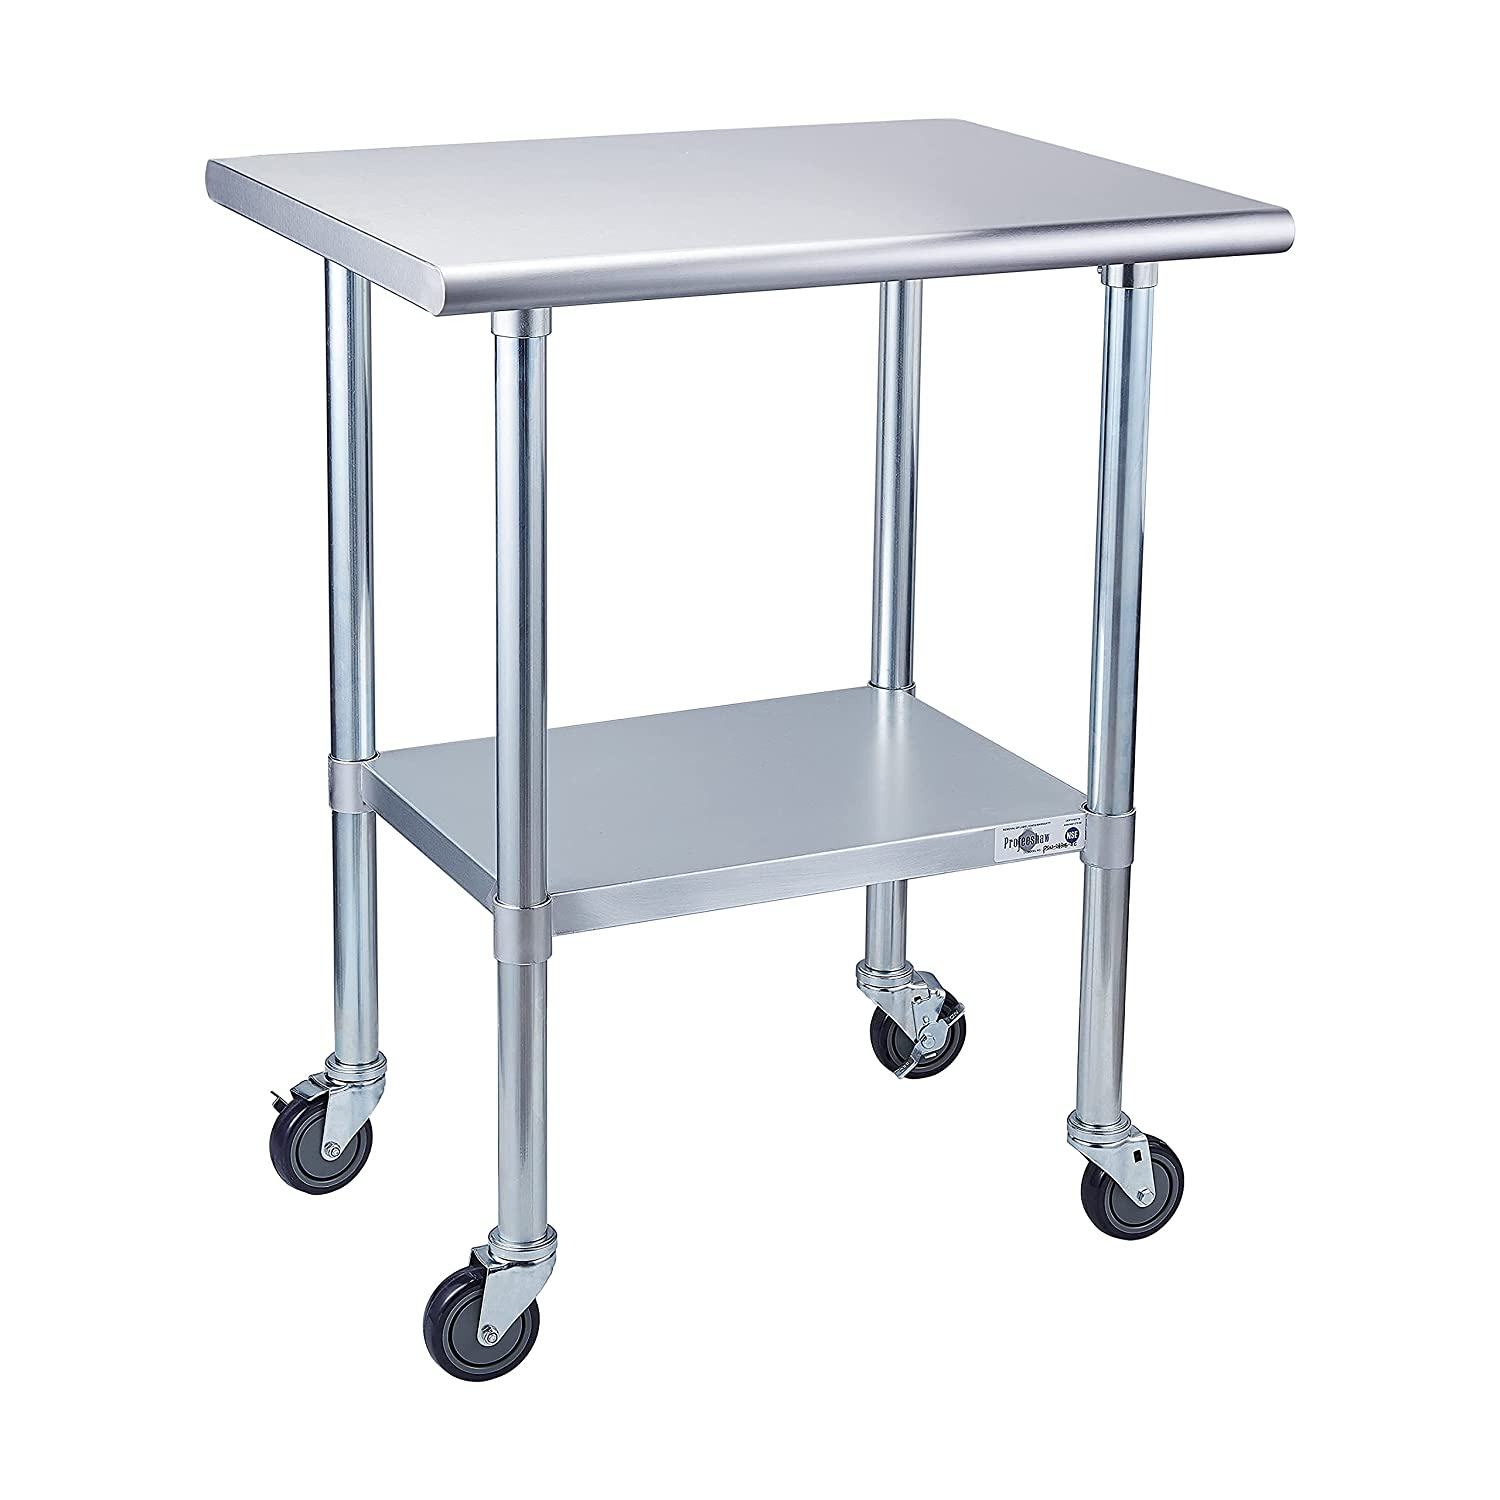 Max 40% OFF Max 53% OFF Profeeshaw Stainless Steel Prep Table NSF Commercial with Wheels